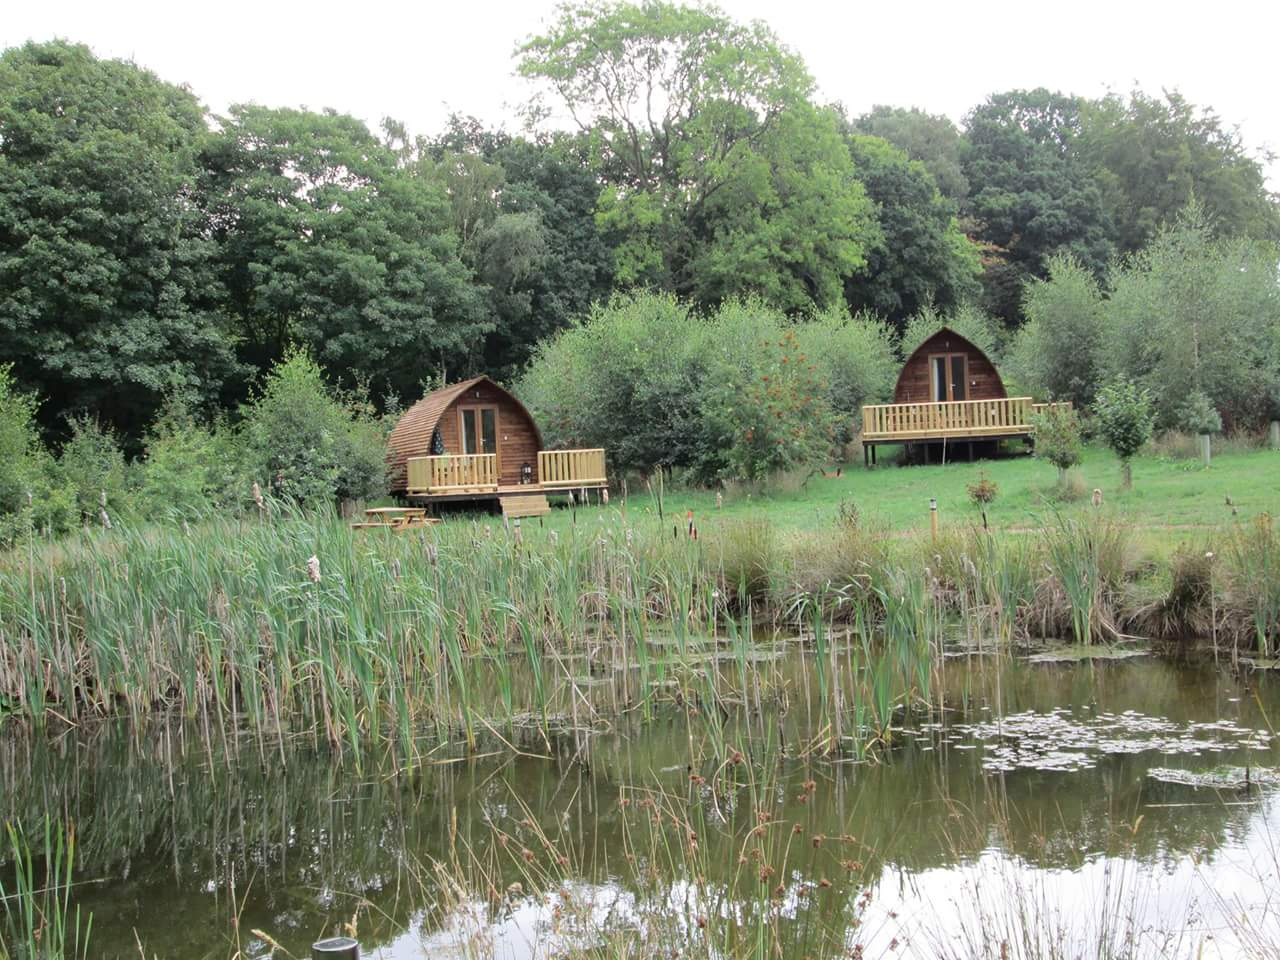 Six cabins are located around a freshwater pond brimming with wildlife